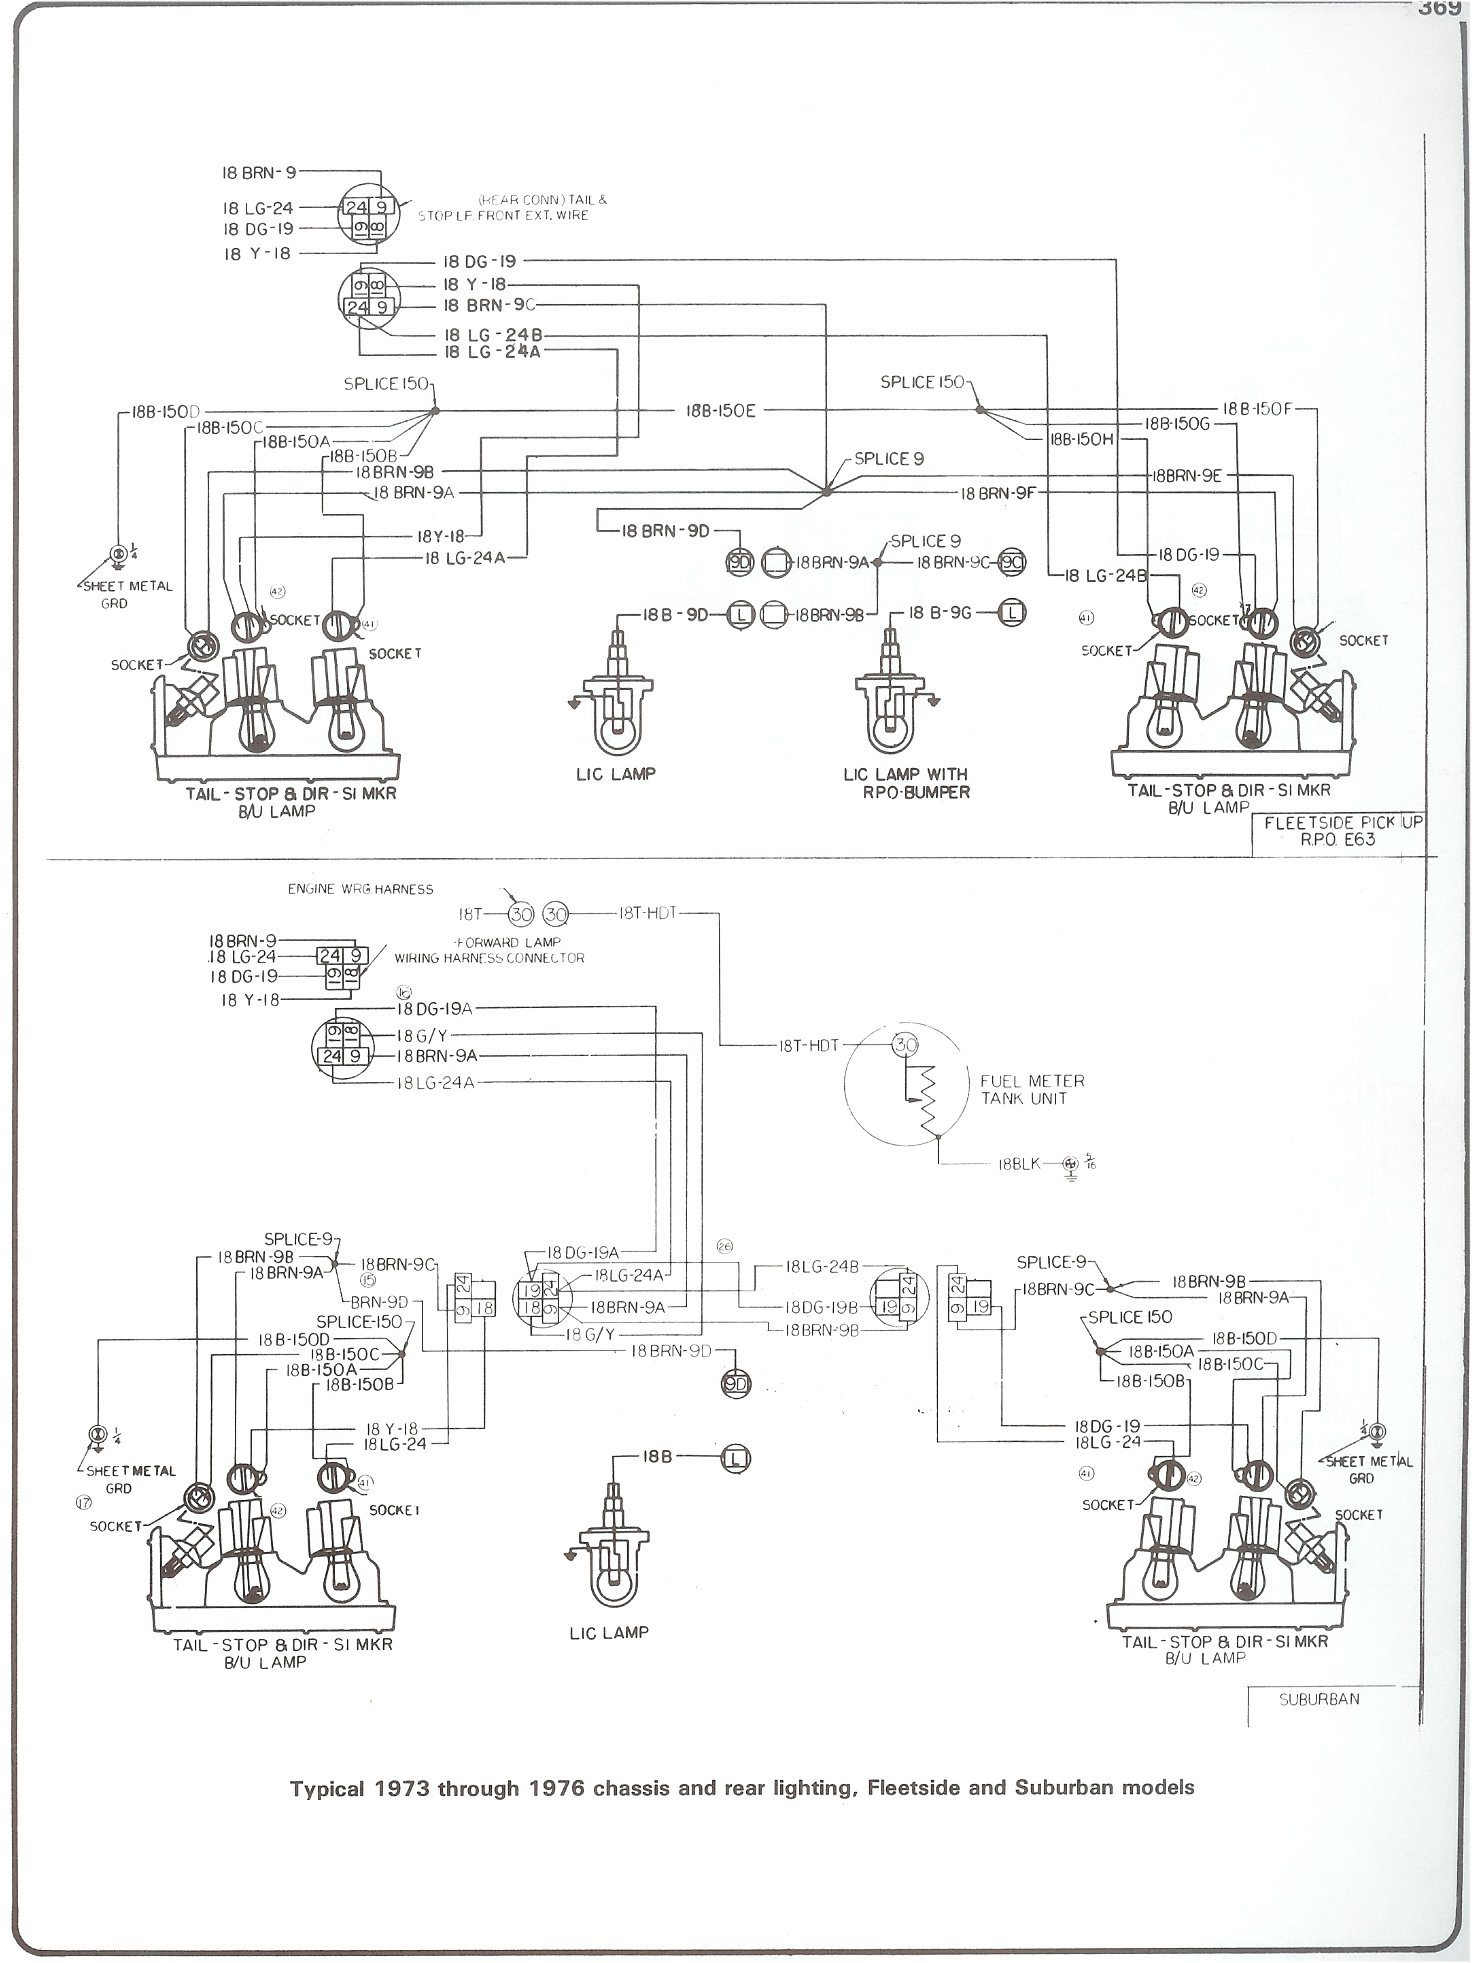 1983 GMC Wiring Diagram Everything About. Plete 73 87 Wiring Diagrams Rh 87chevytrucks Gm Dash 1983 GMC. GM. Basic Gm Wiring Diagram At Scoala.co